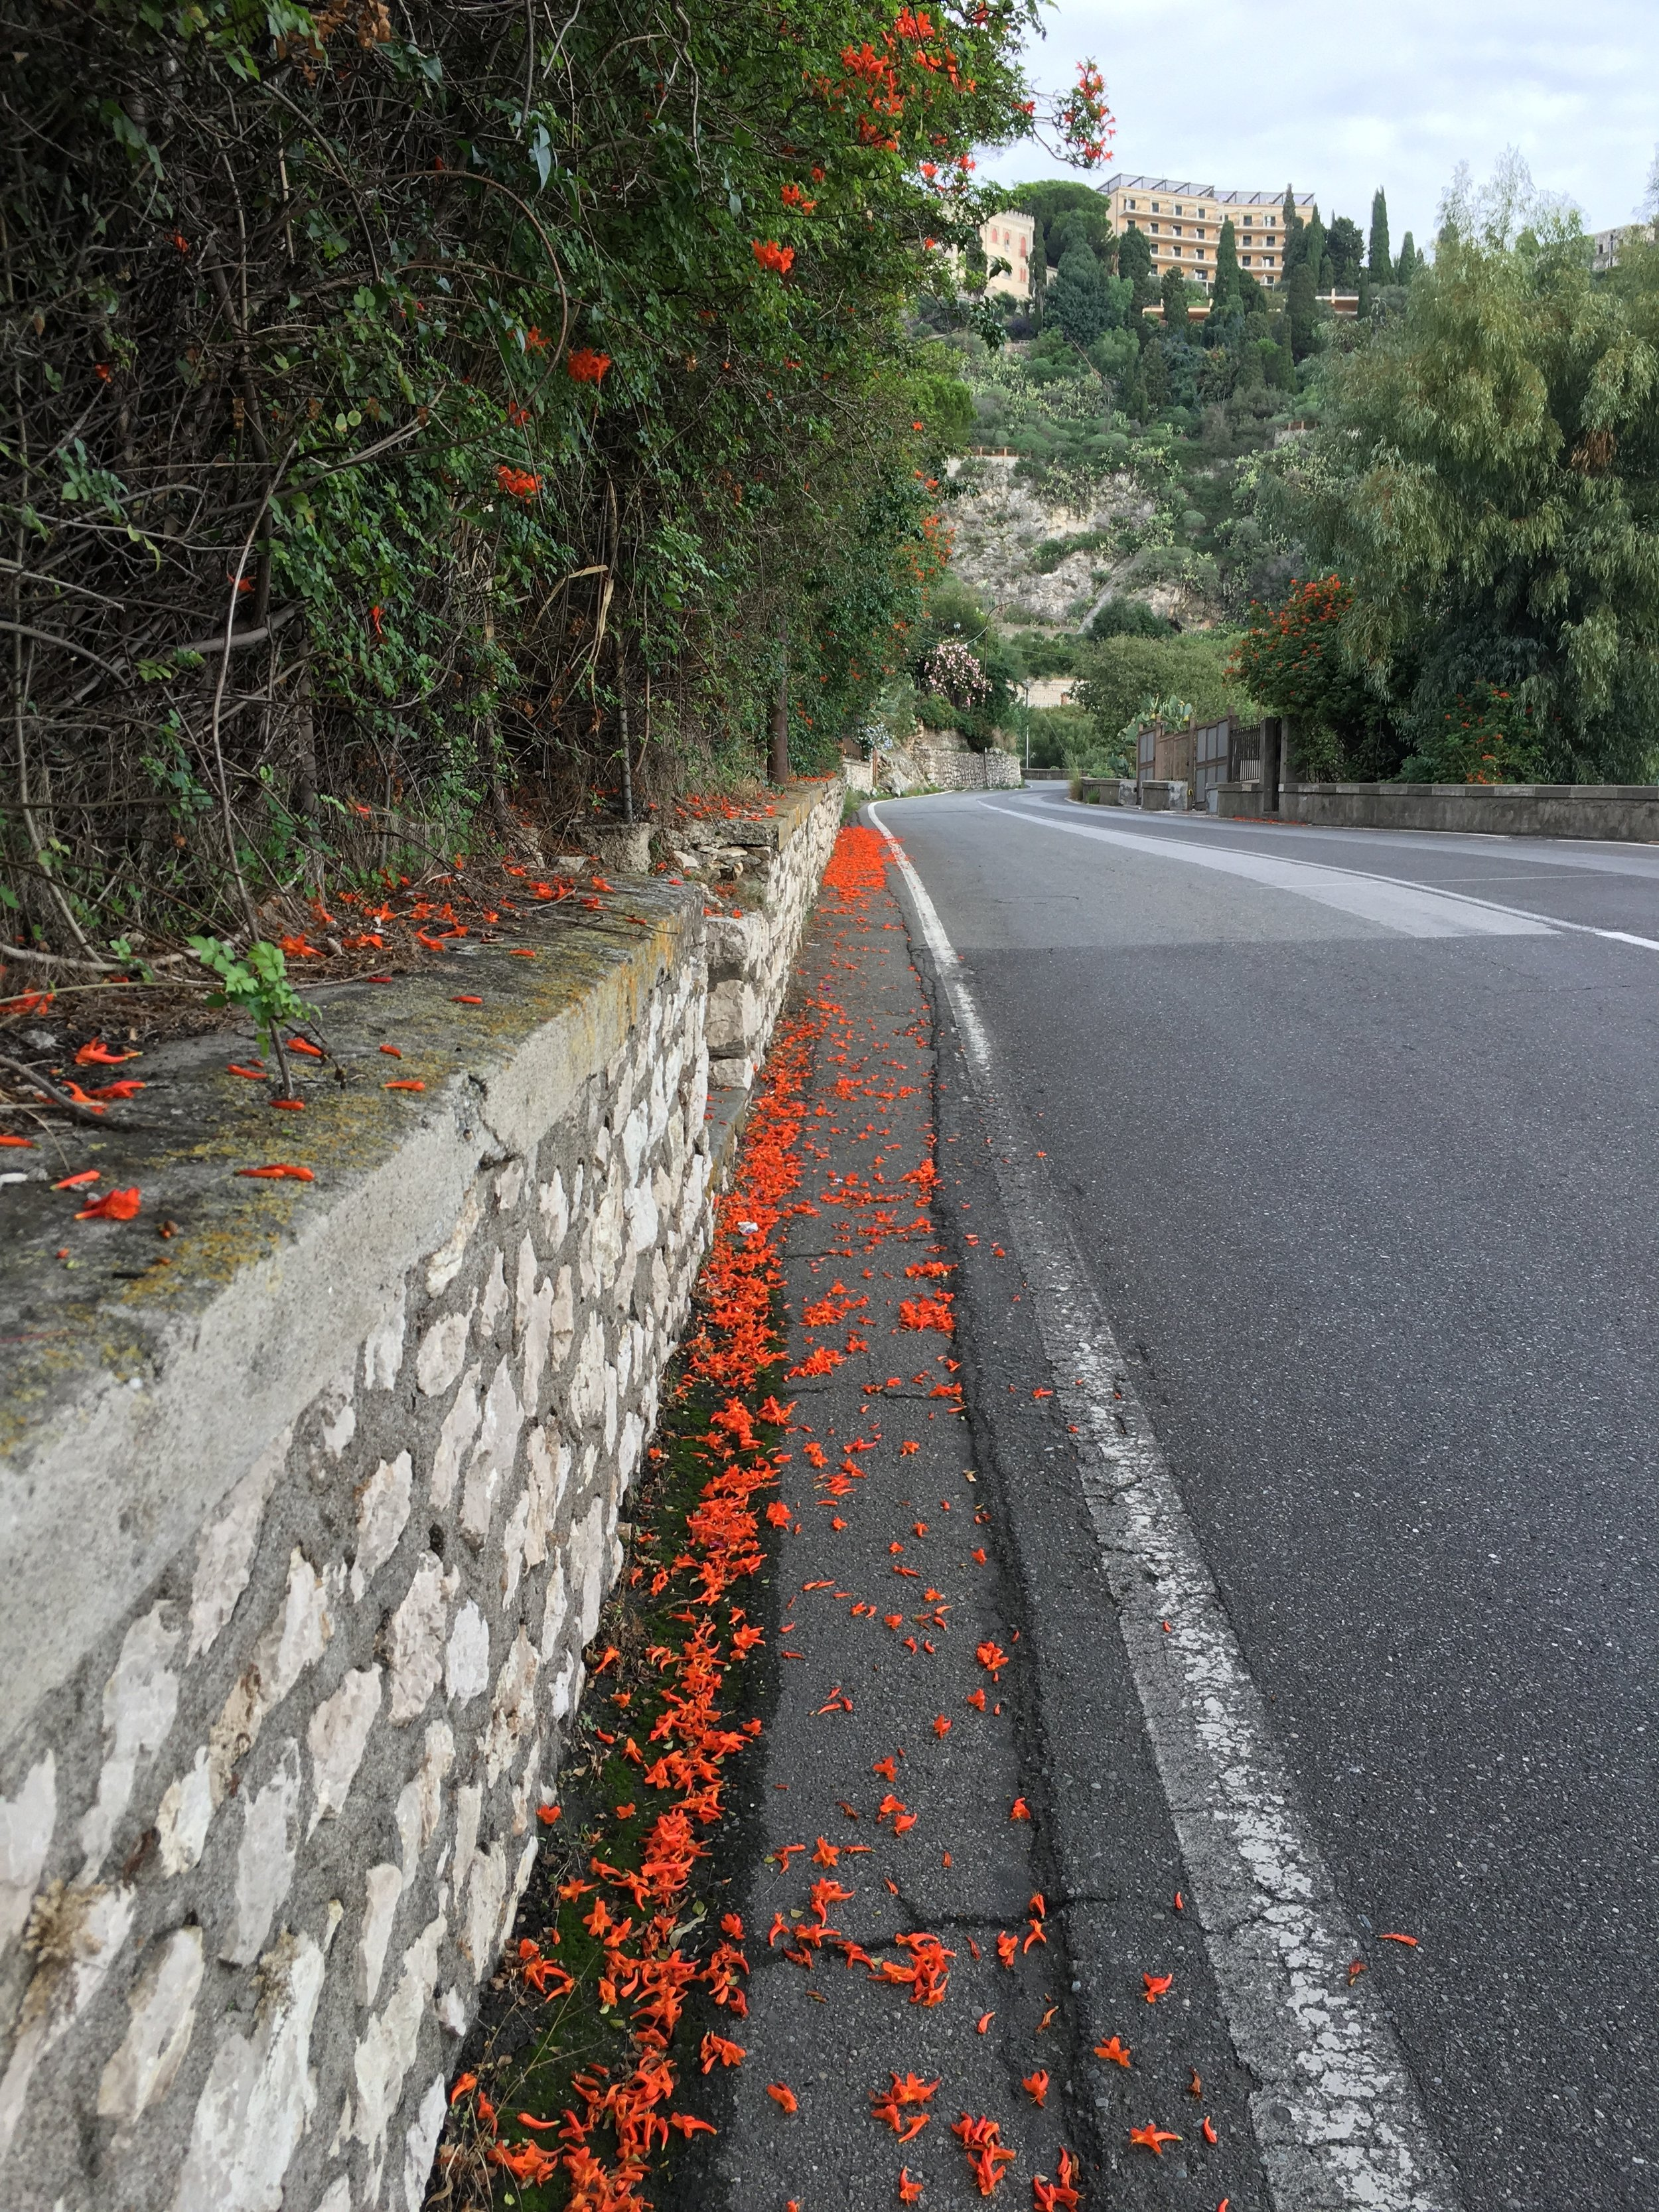 Road to Taormina, Italy, Oct 2016